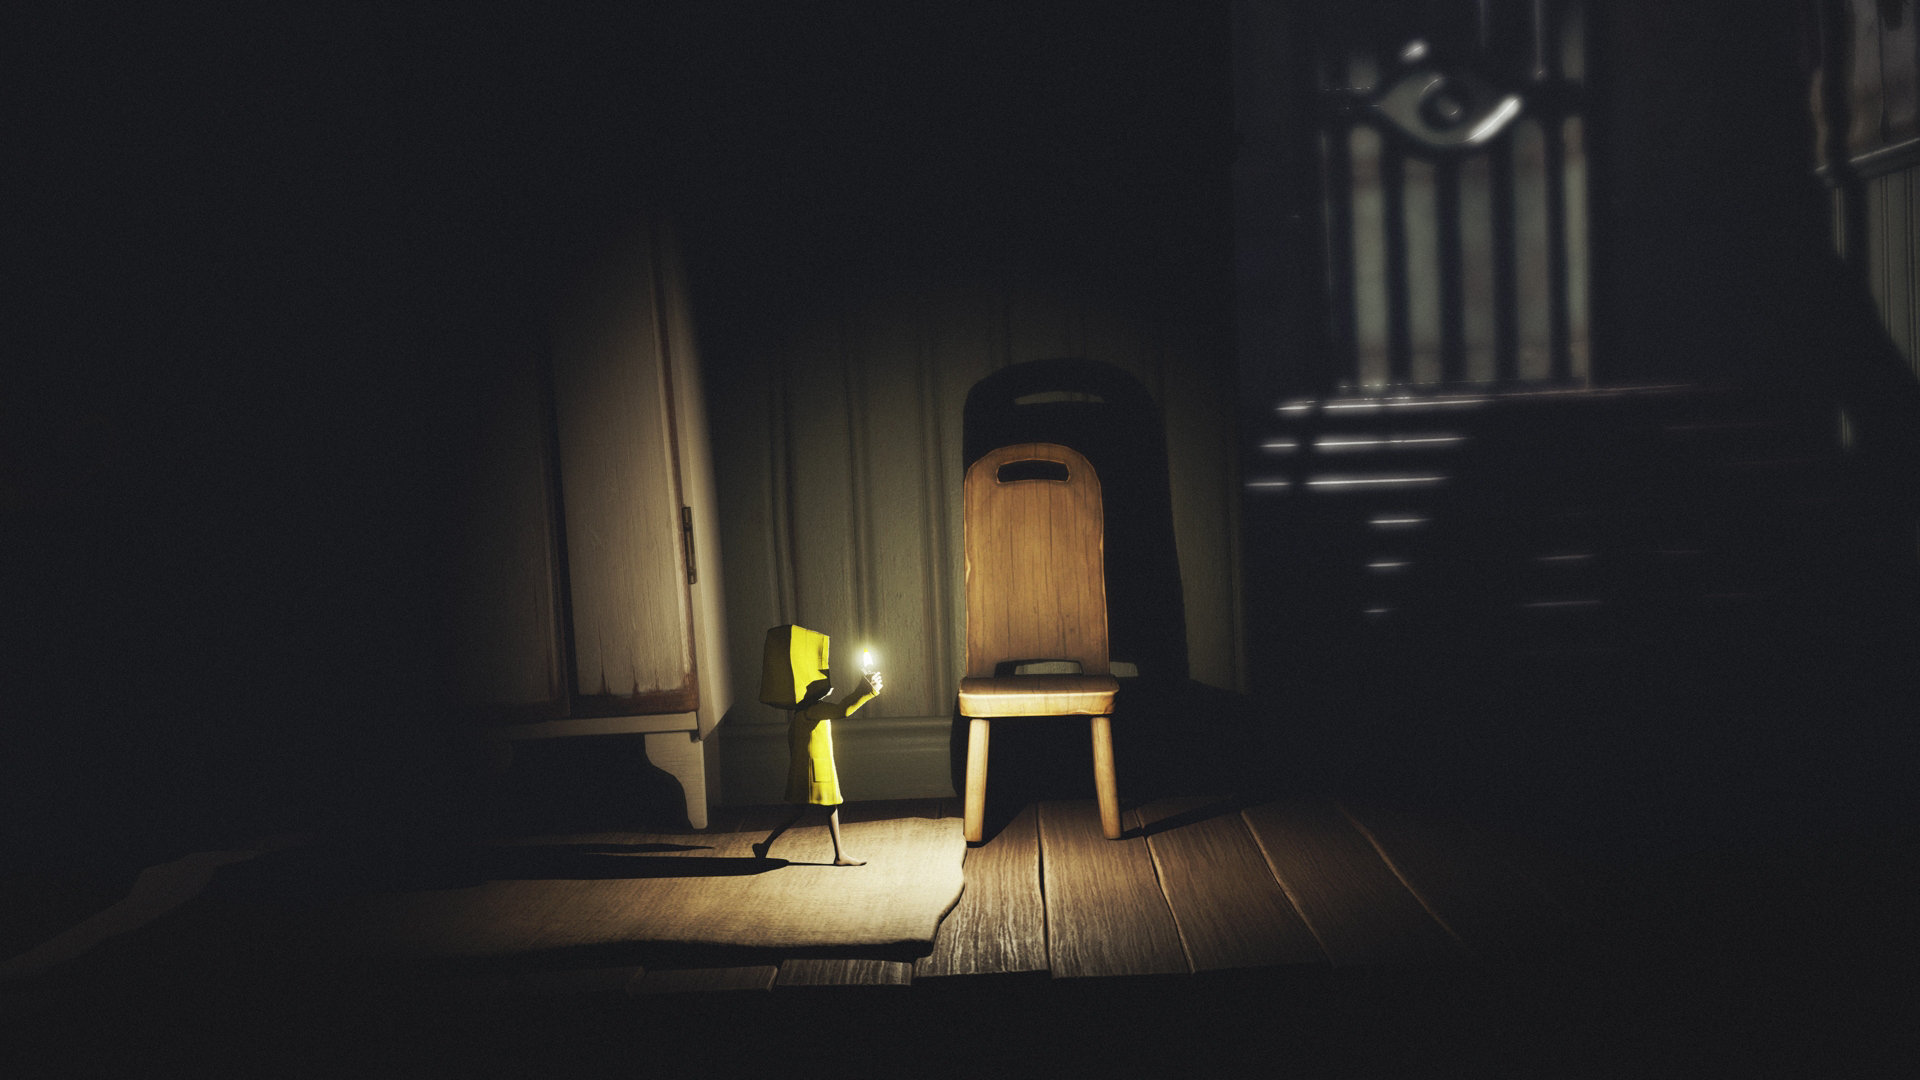 little-nightmares-looking-for-lift-scree